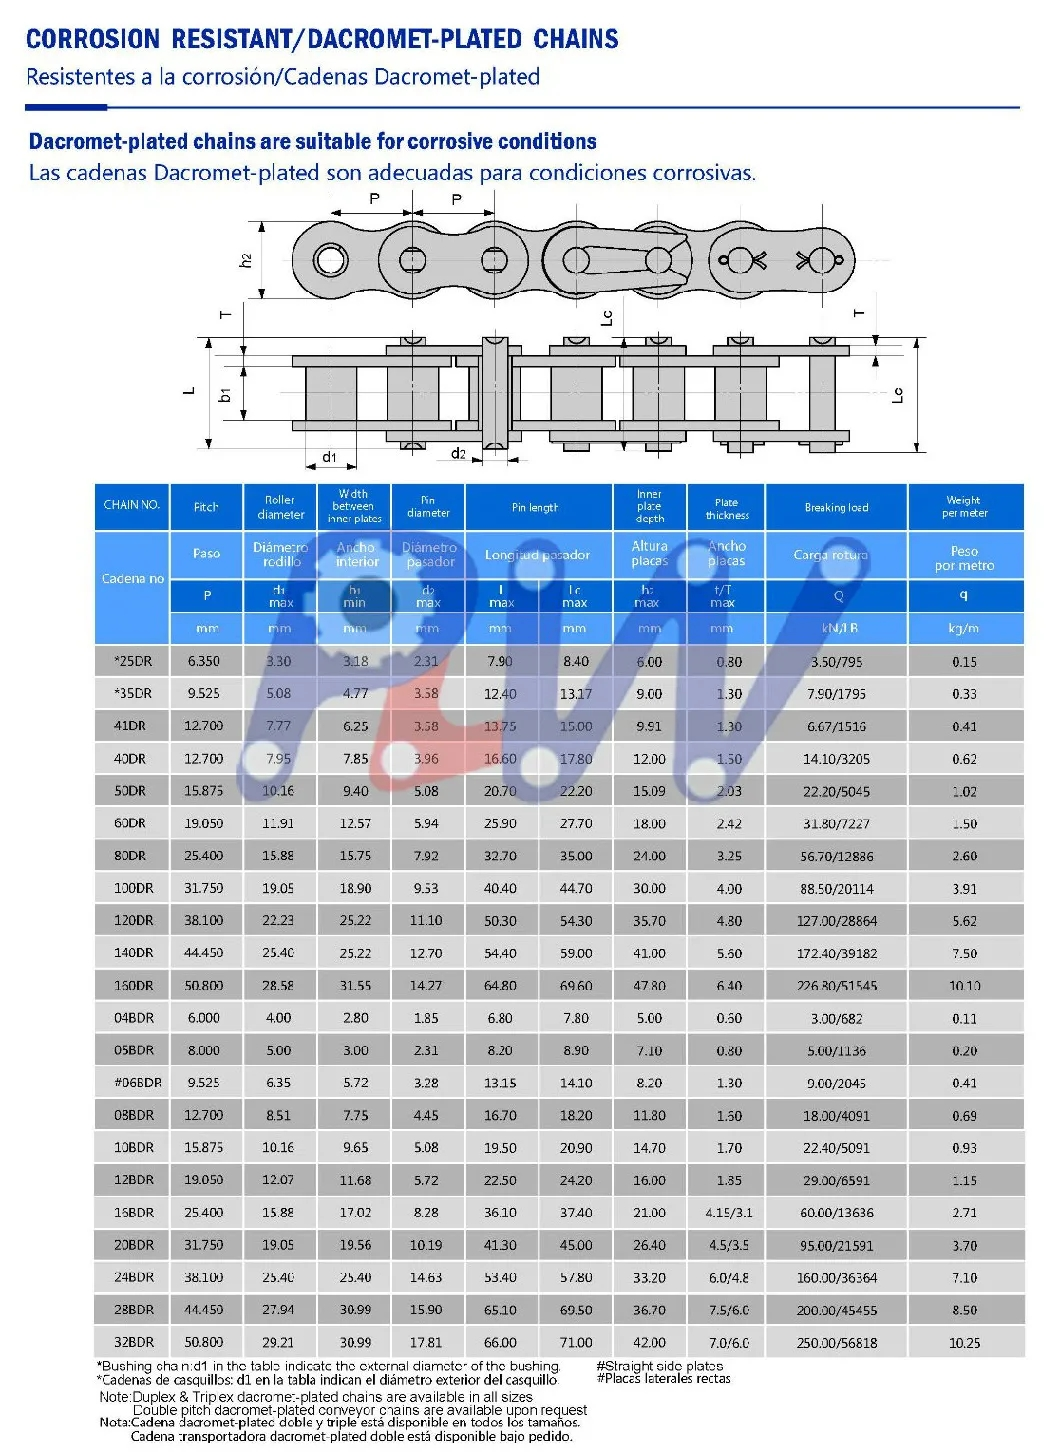 Dacromet-Plated-Precision-Roller-Chain-From-China.webp.jpg